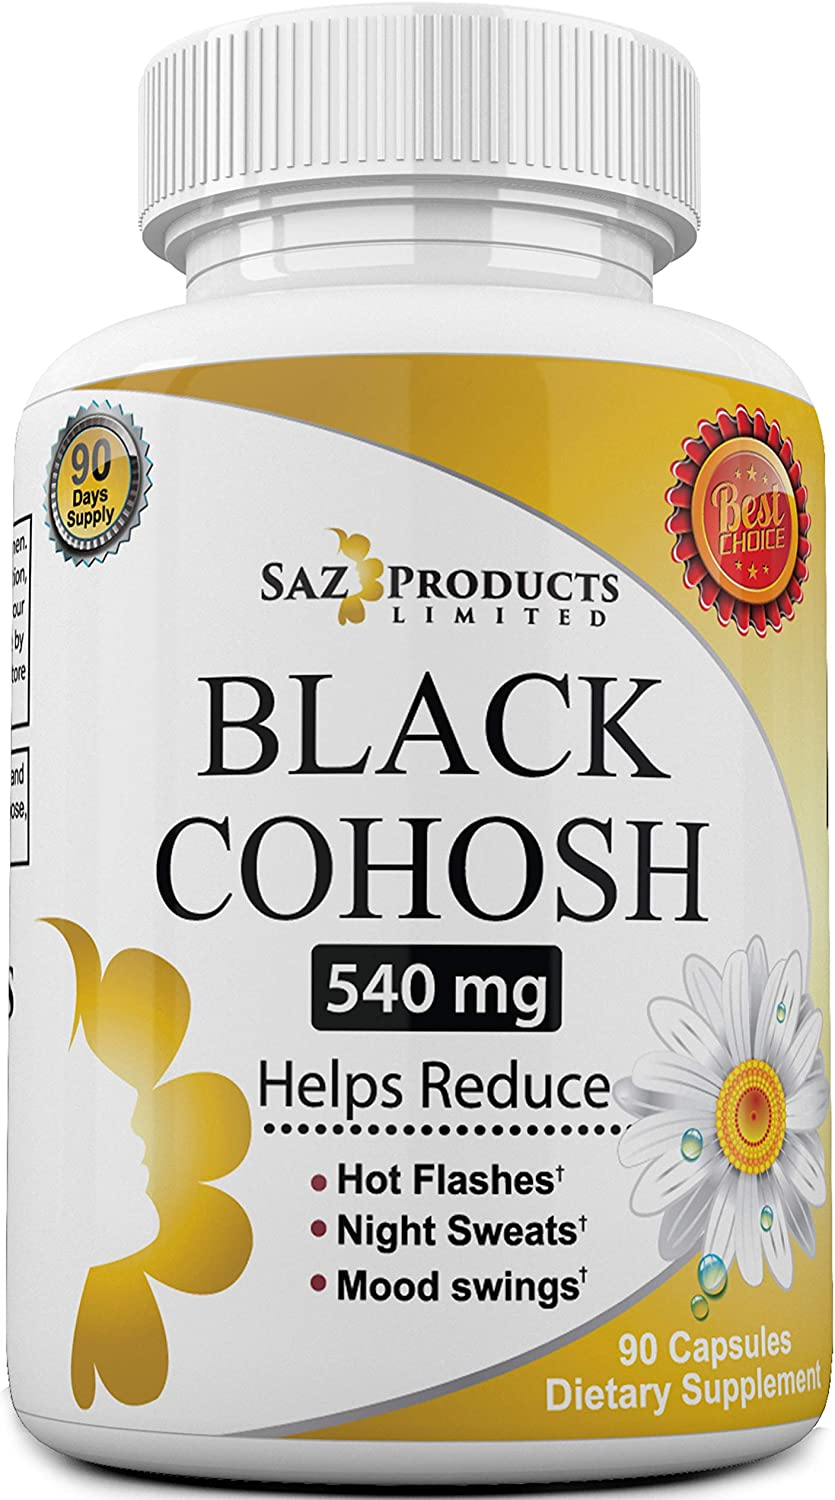 Whole Root Black Cohosh Menopause Complex - Relieves Hot Flashes Night Sweats Mood Swings Sleeplessness – 100% Pure Natural Herbal Supplement for Hormone Balance – 540mg Estrogen Free – 90 Days Supply: Health & Personal Care